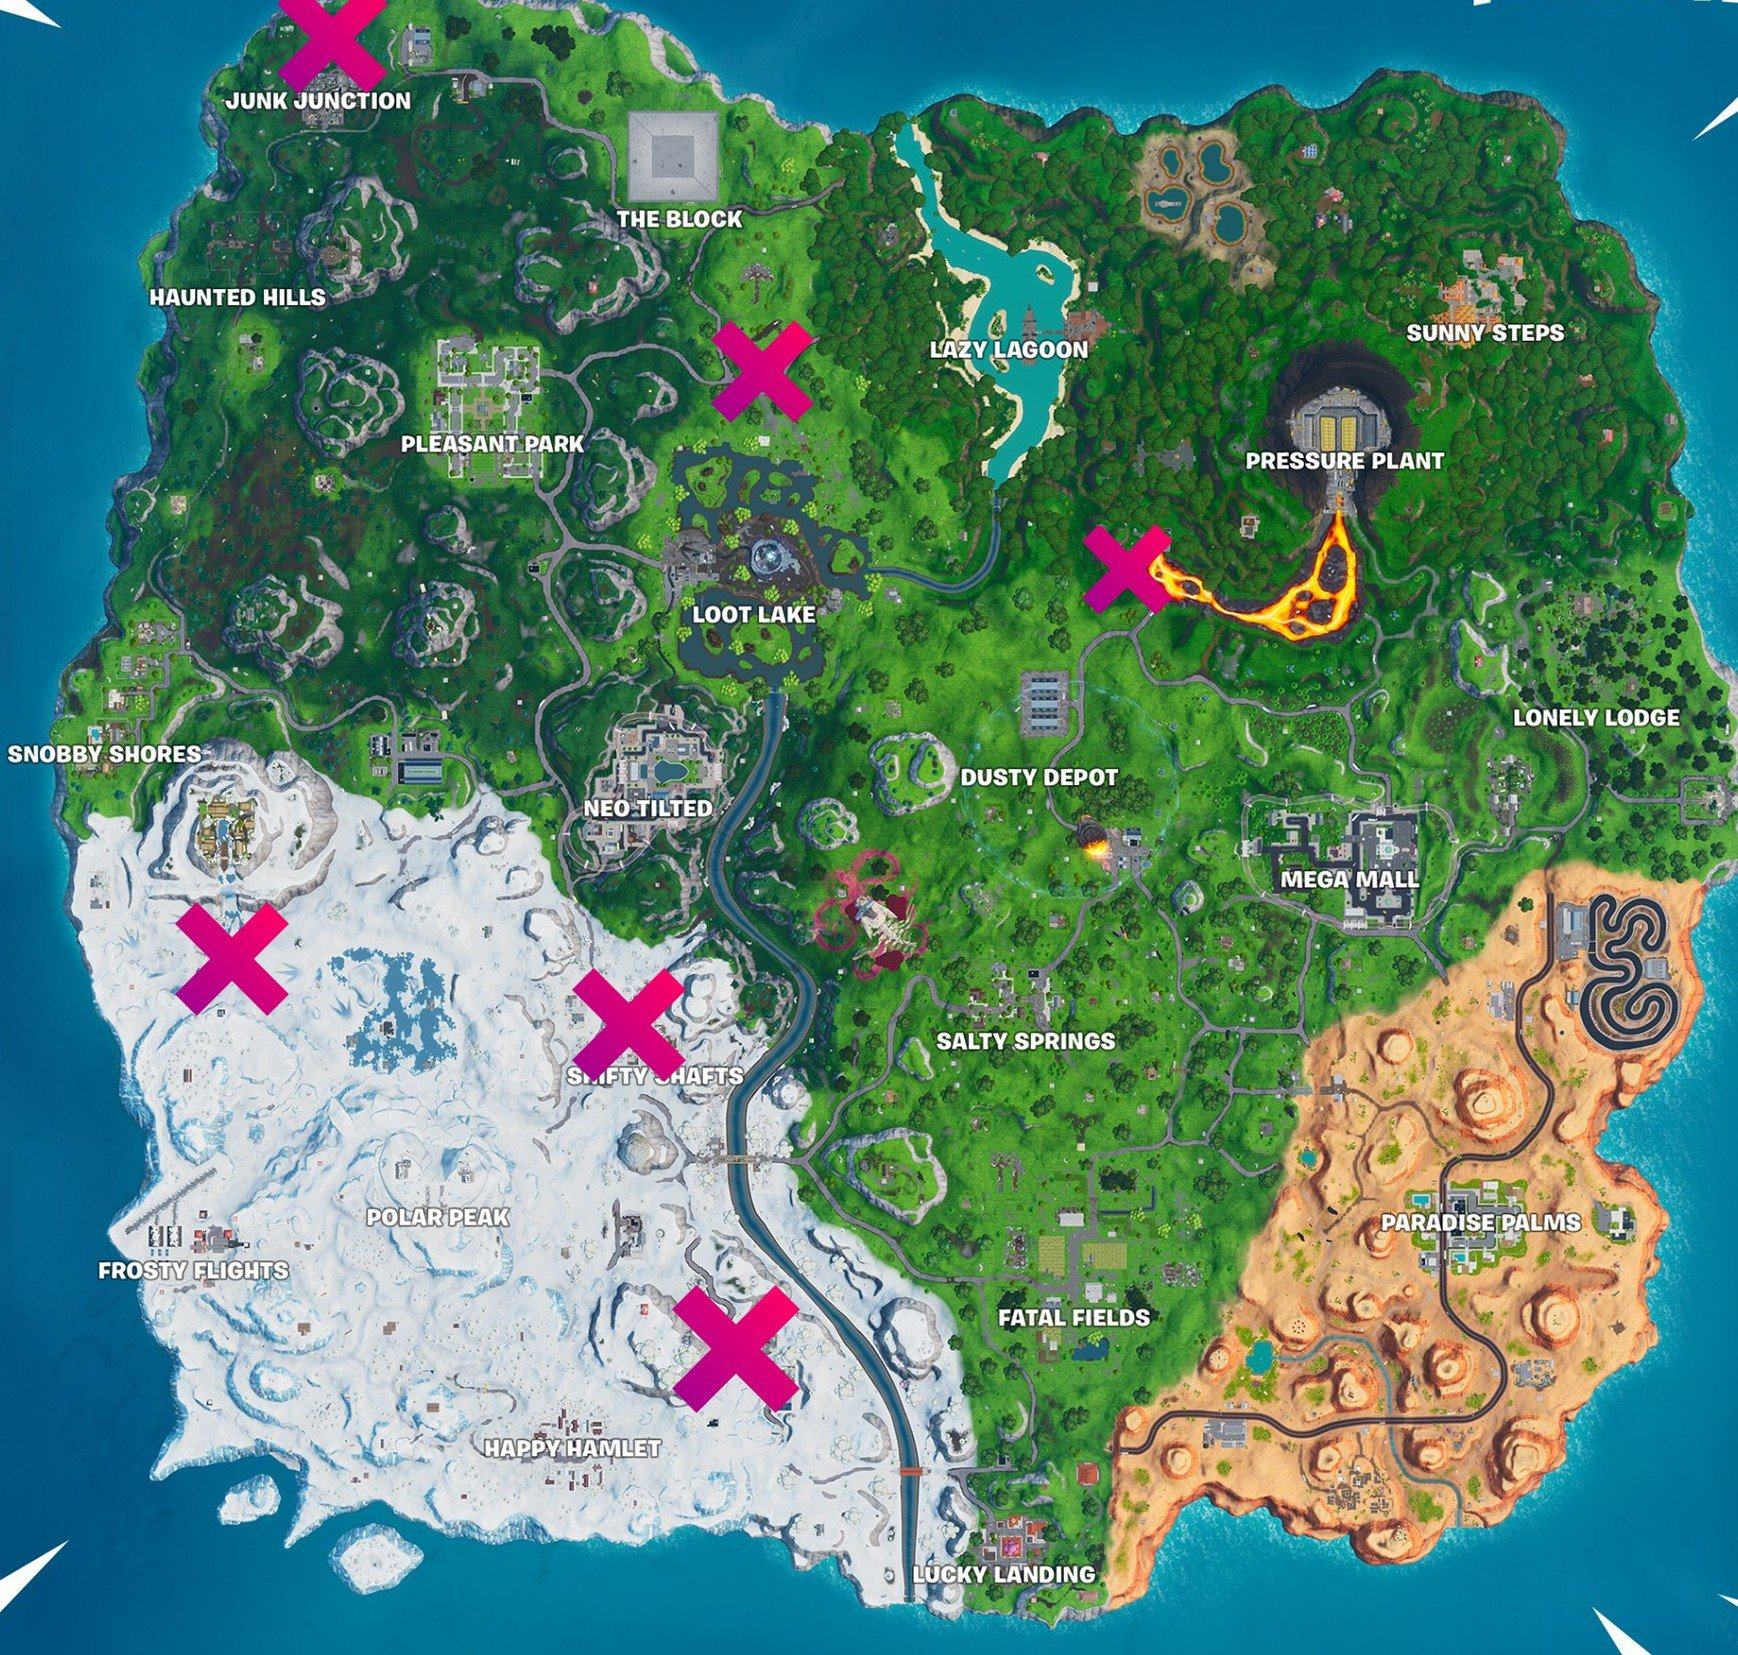 Fortnite - all lost spray can locations